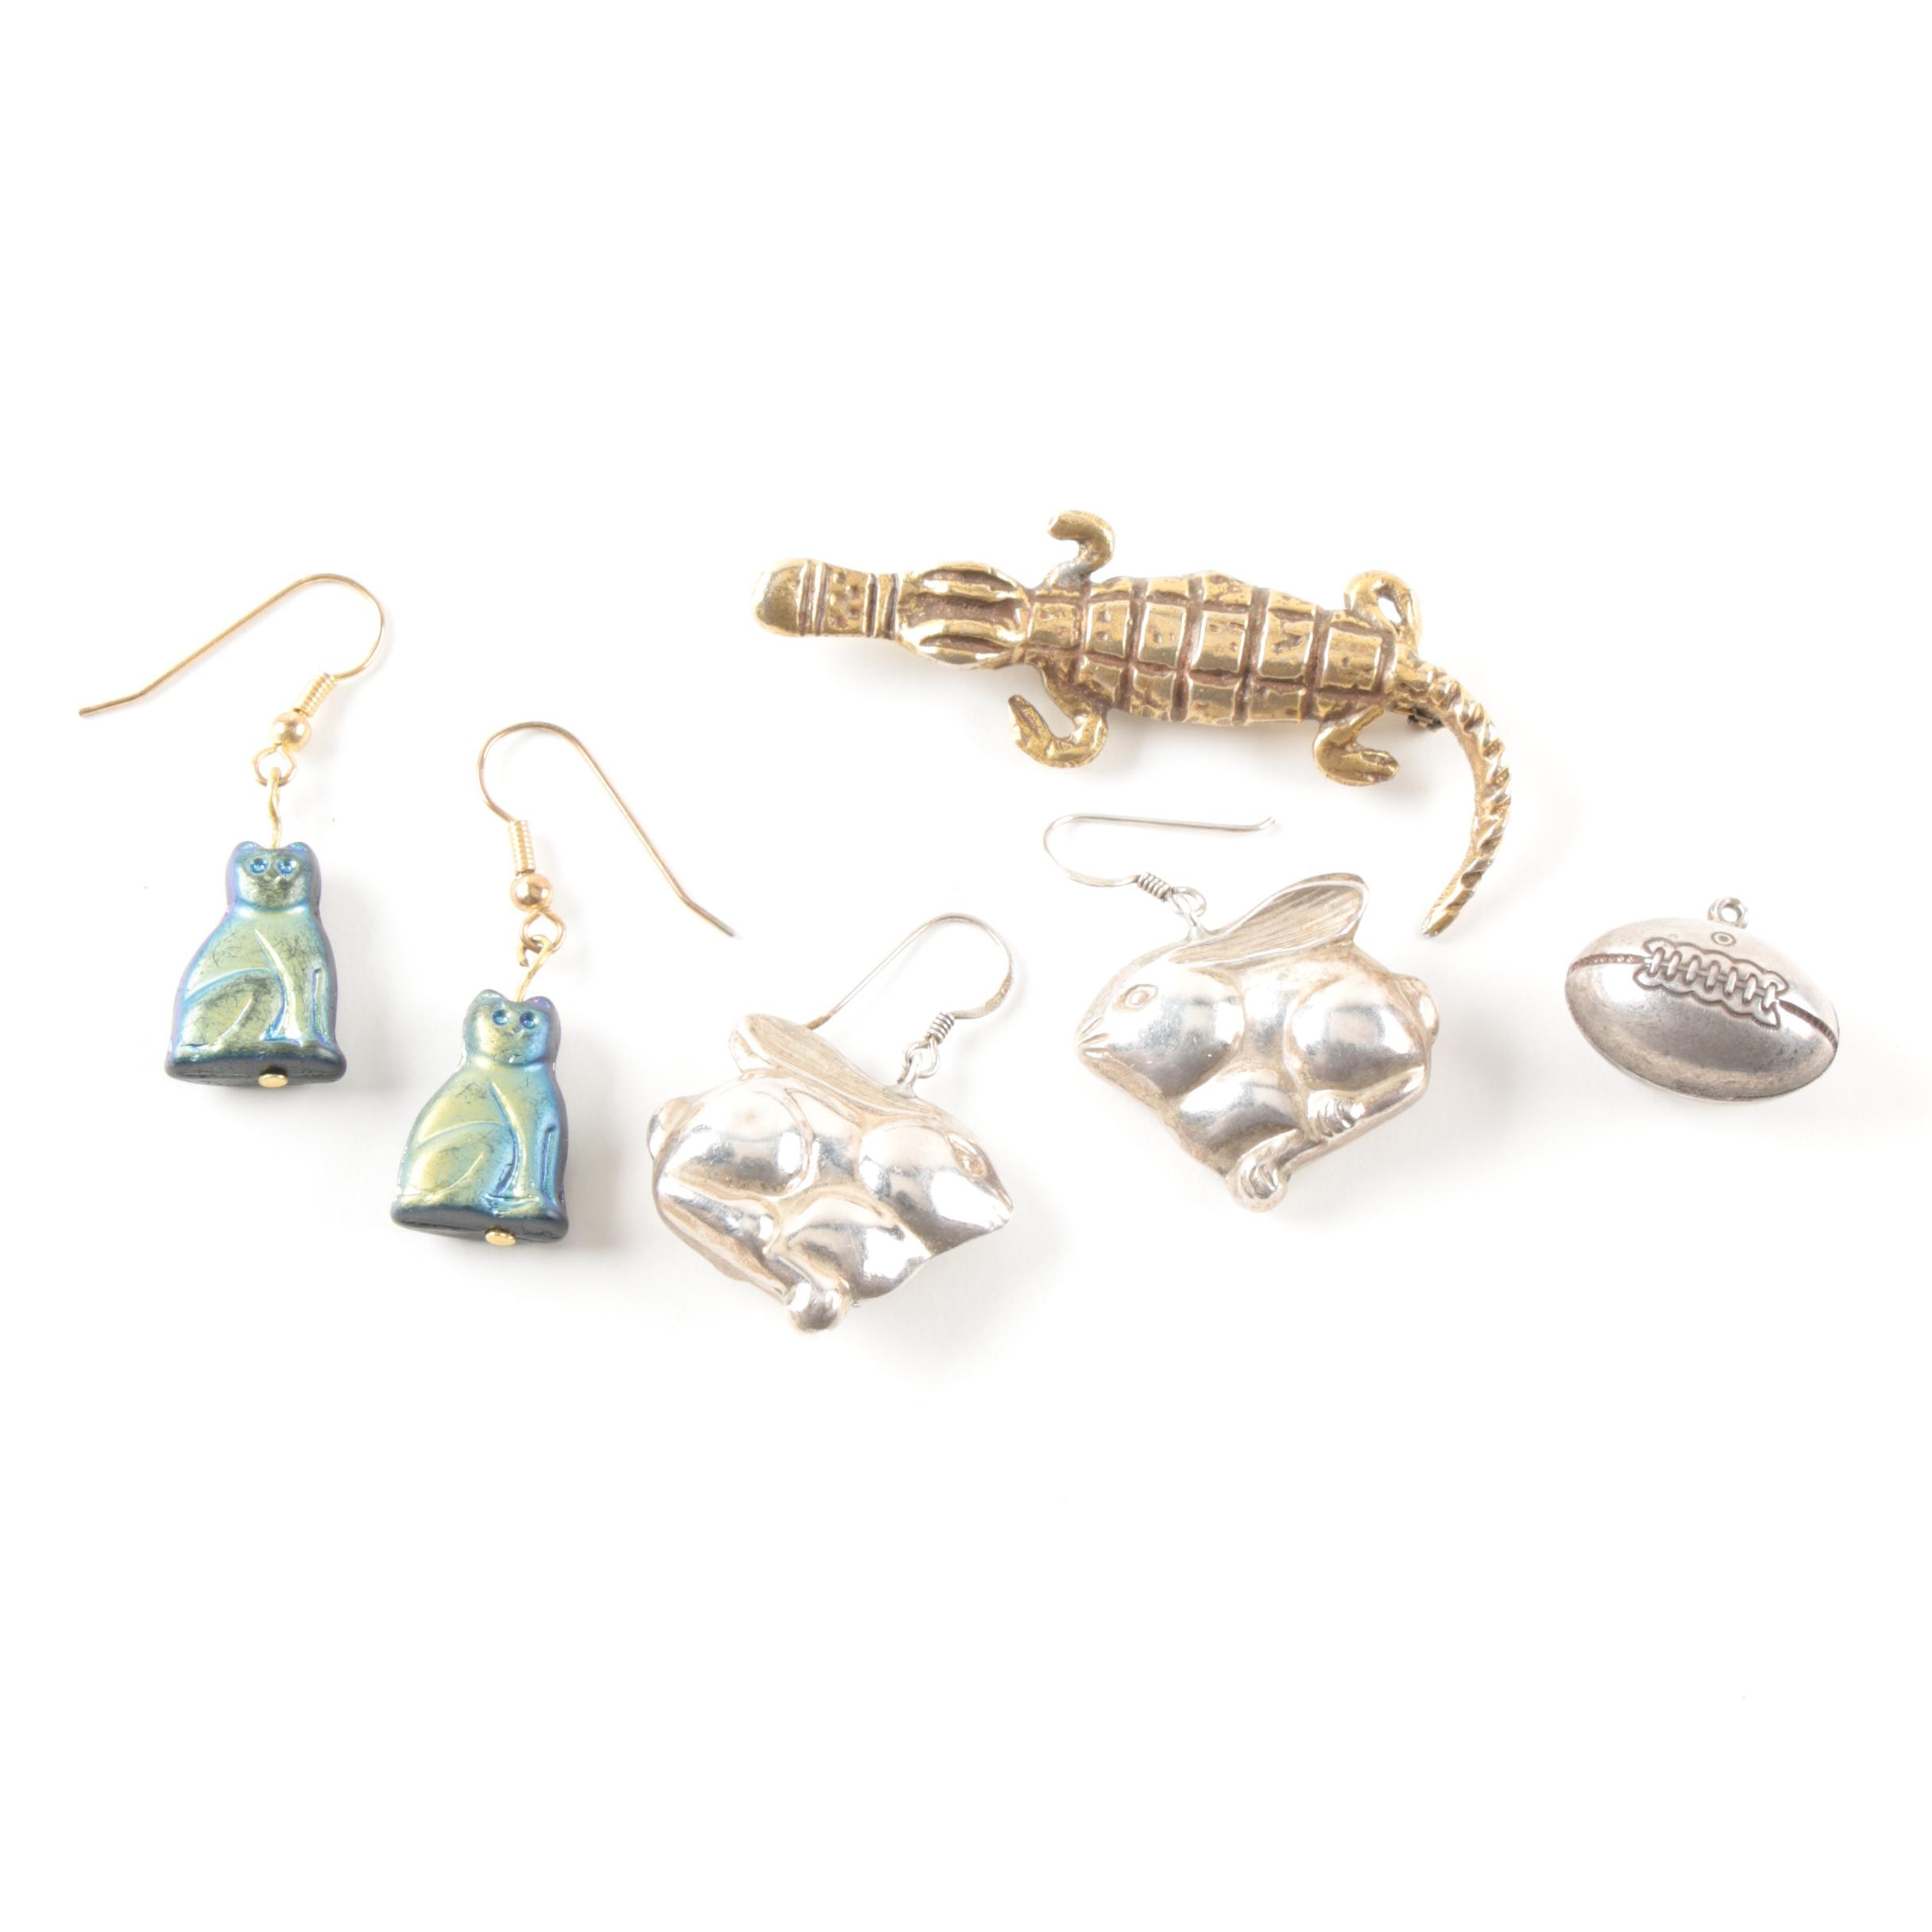 Sterling Silver and Gold Tone Charm, Earrings and Brooches Including Resin